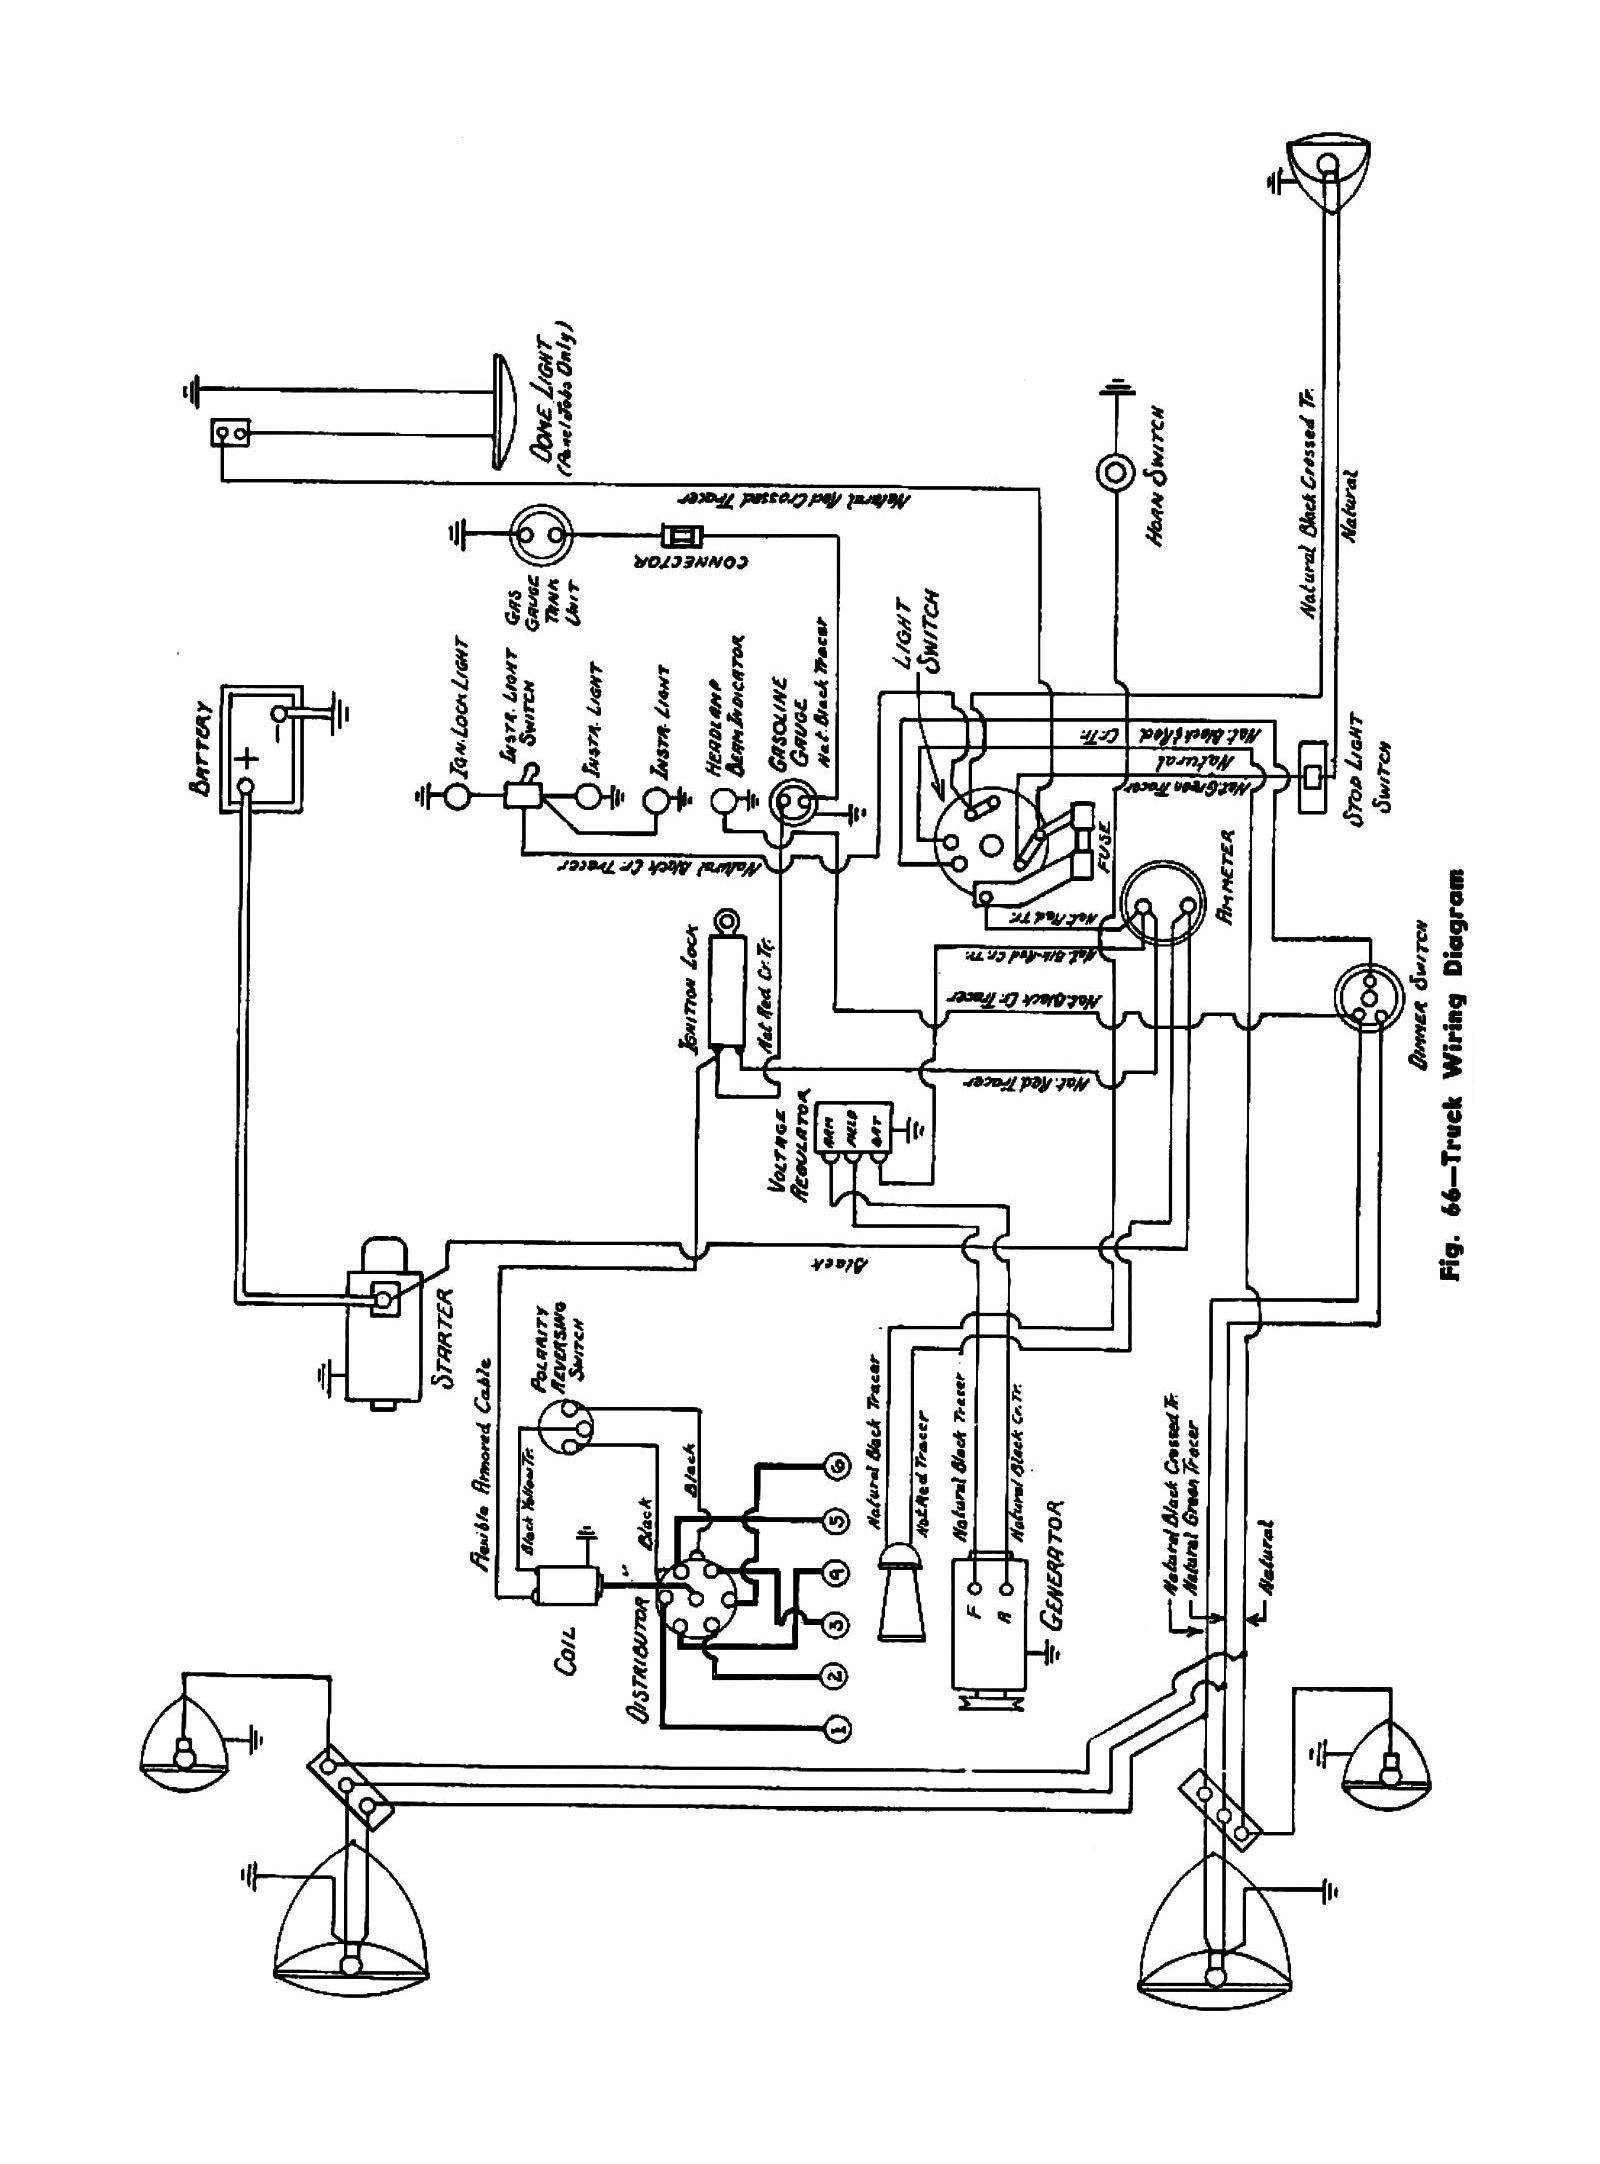 45truck ihc truck wiring diagrams mazda truck wiring diagrams \u2022 free  at readyjetset.co